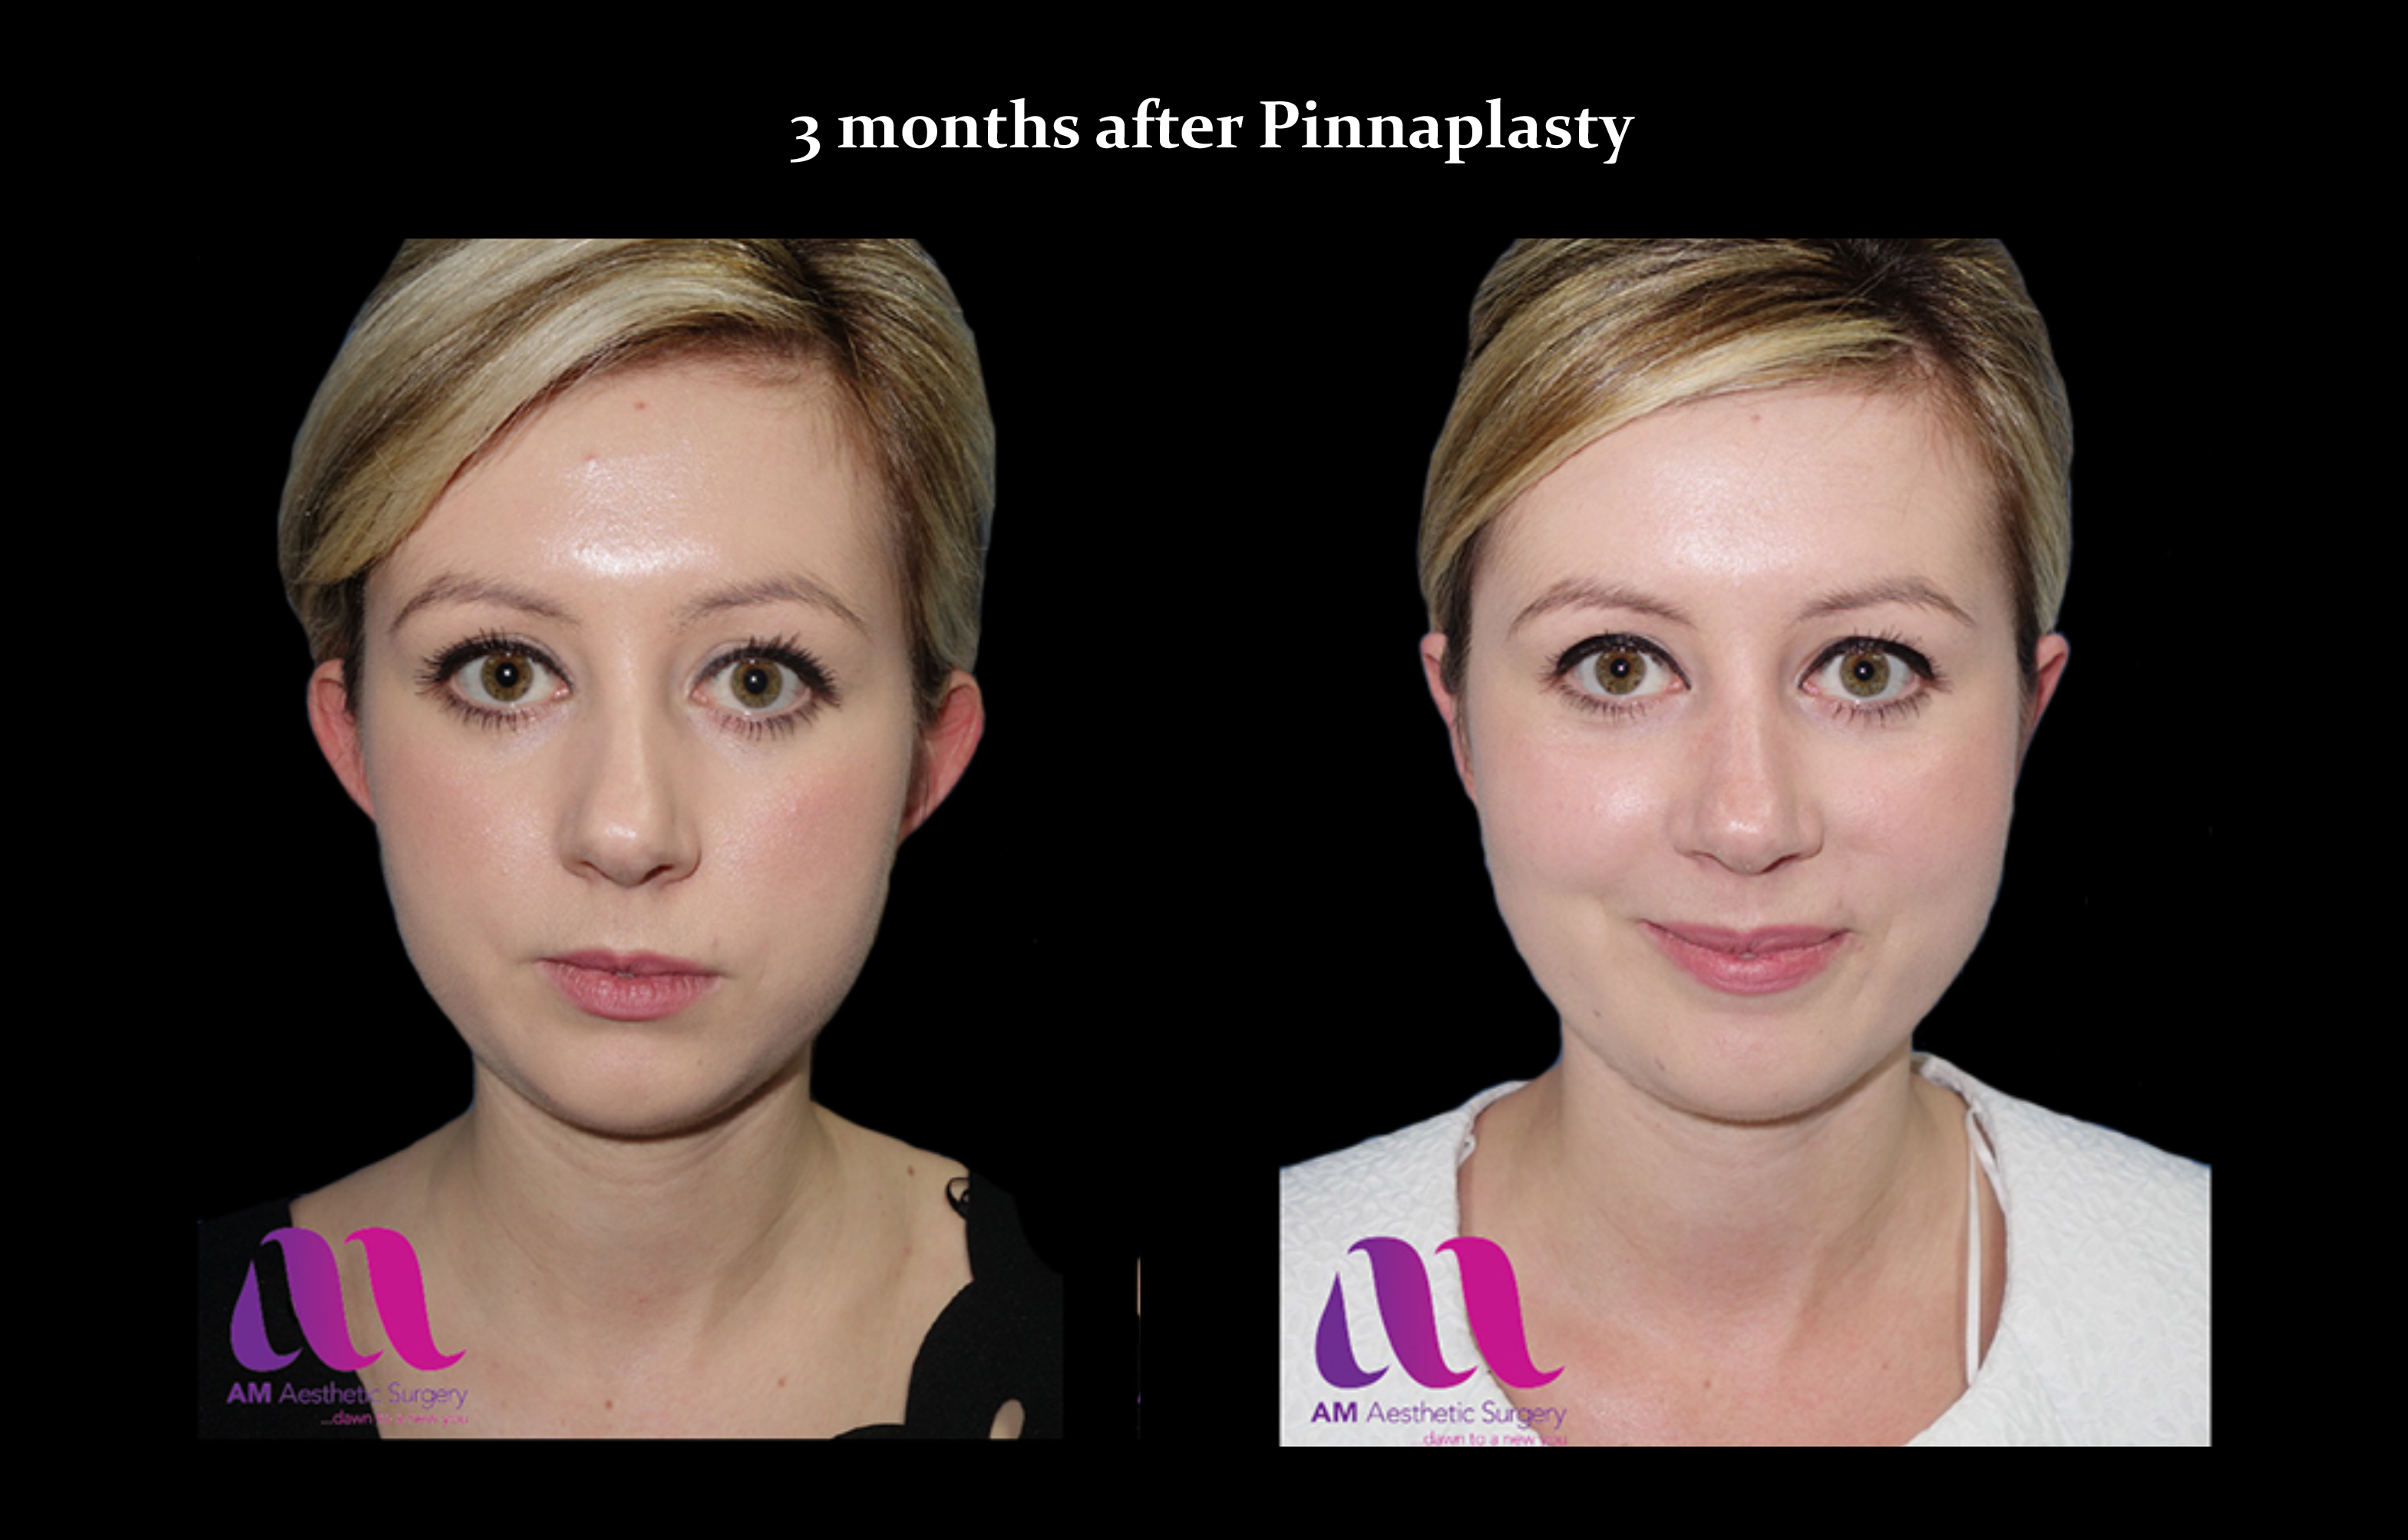 Pinnaplasty1a